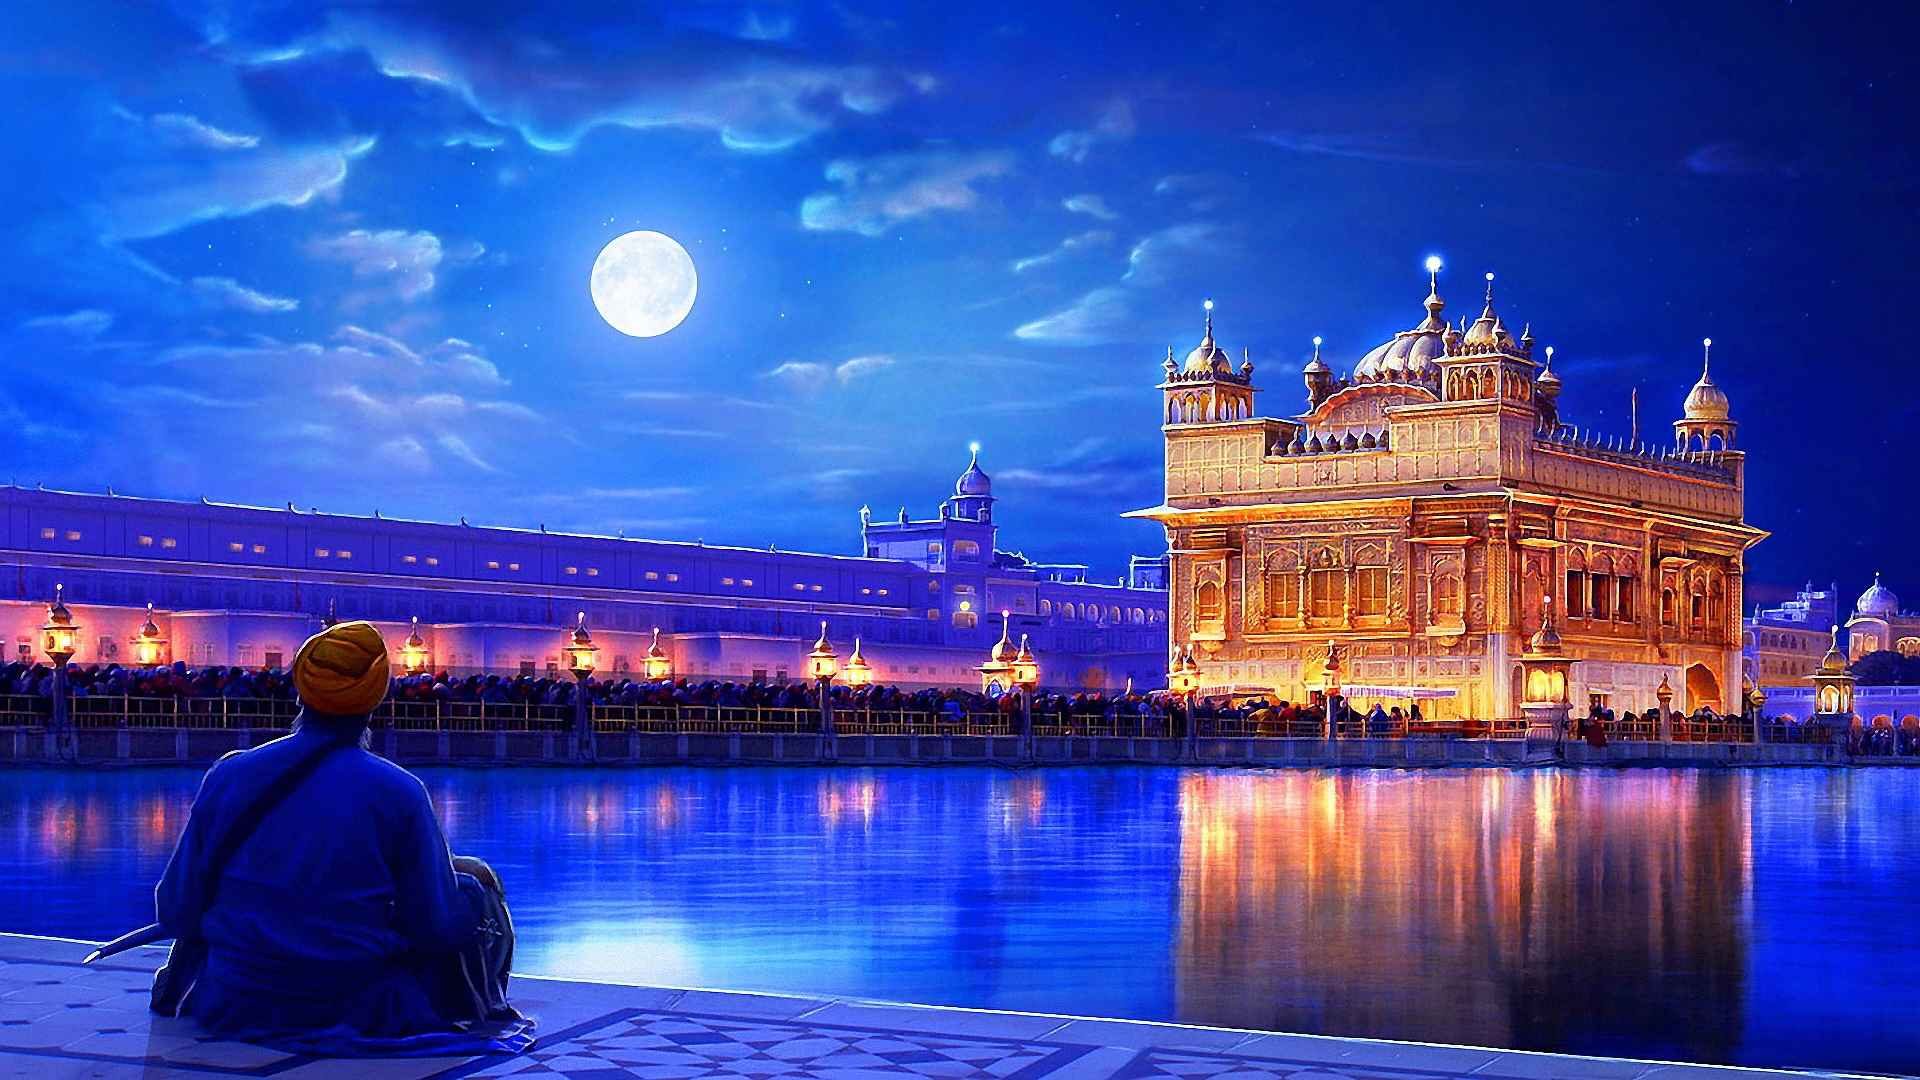 golden-temple-india-high-resolution-wallpaper-for-desktop-background-download-golden-temple-images-free